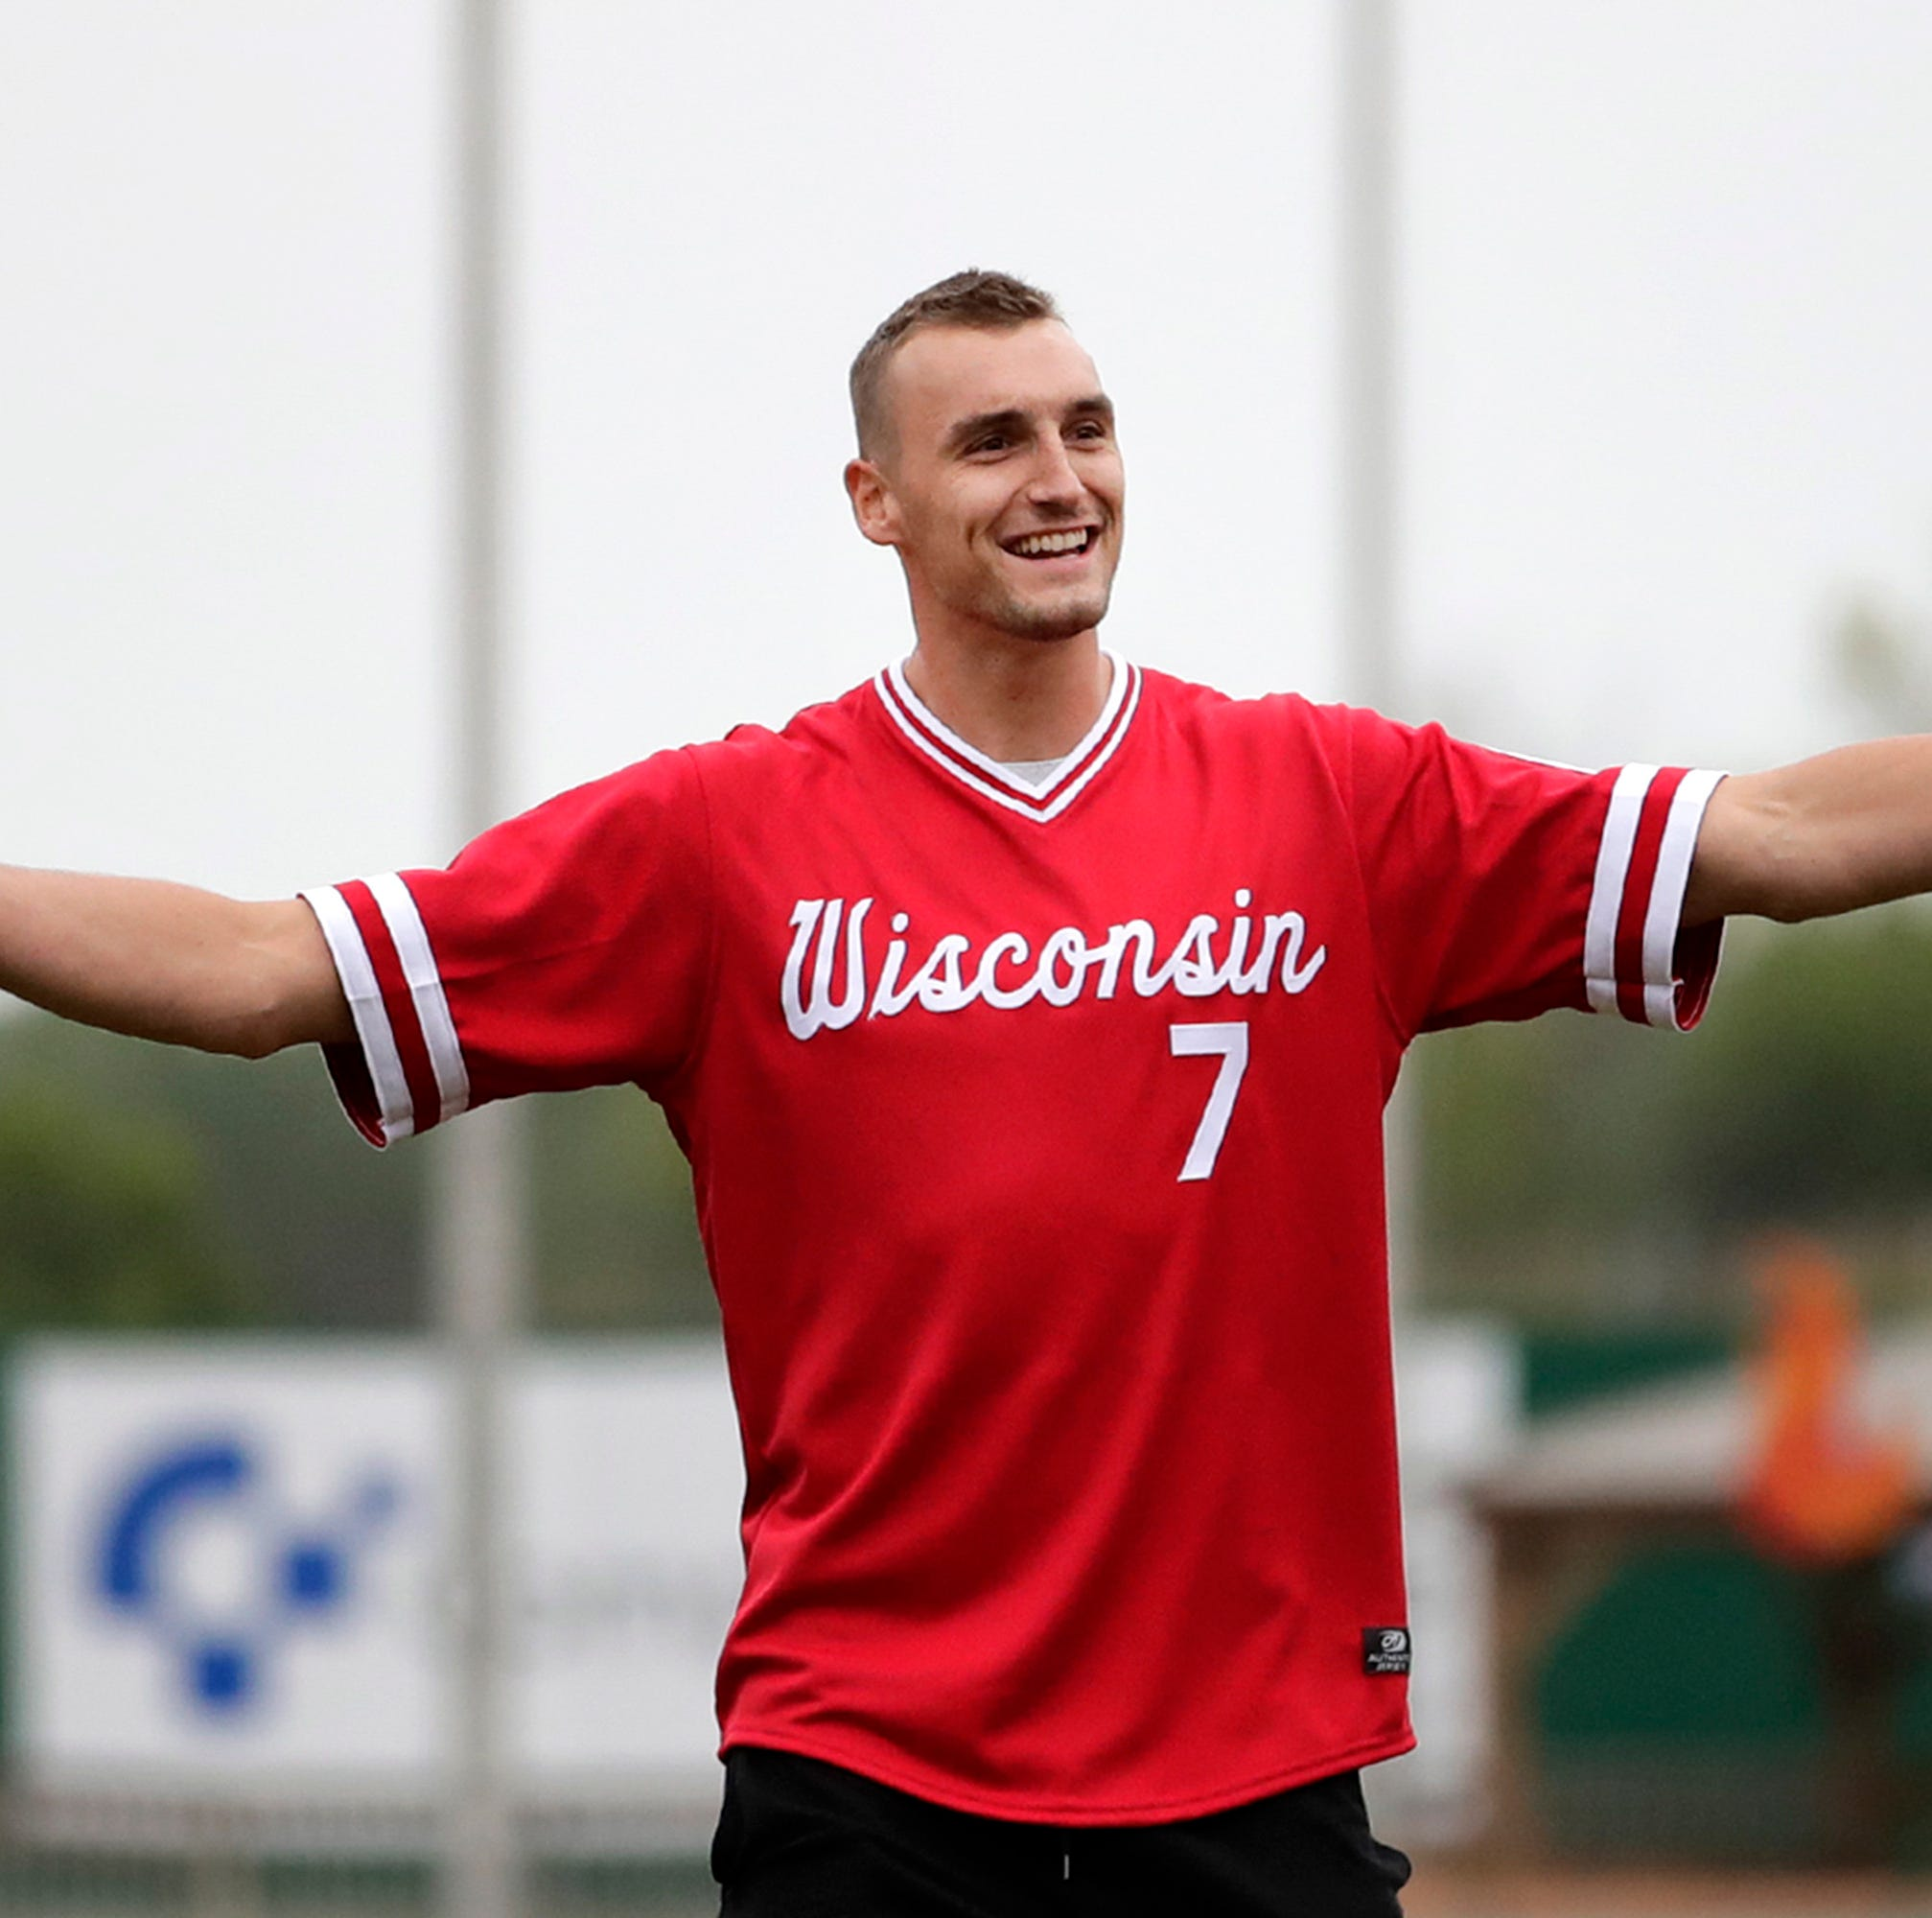 NBA: Sam Dekker making quick impression with Washington Wizards